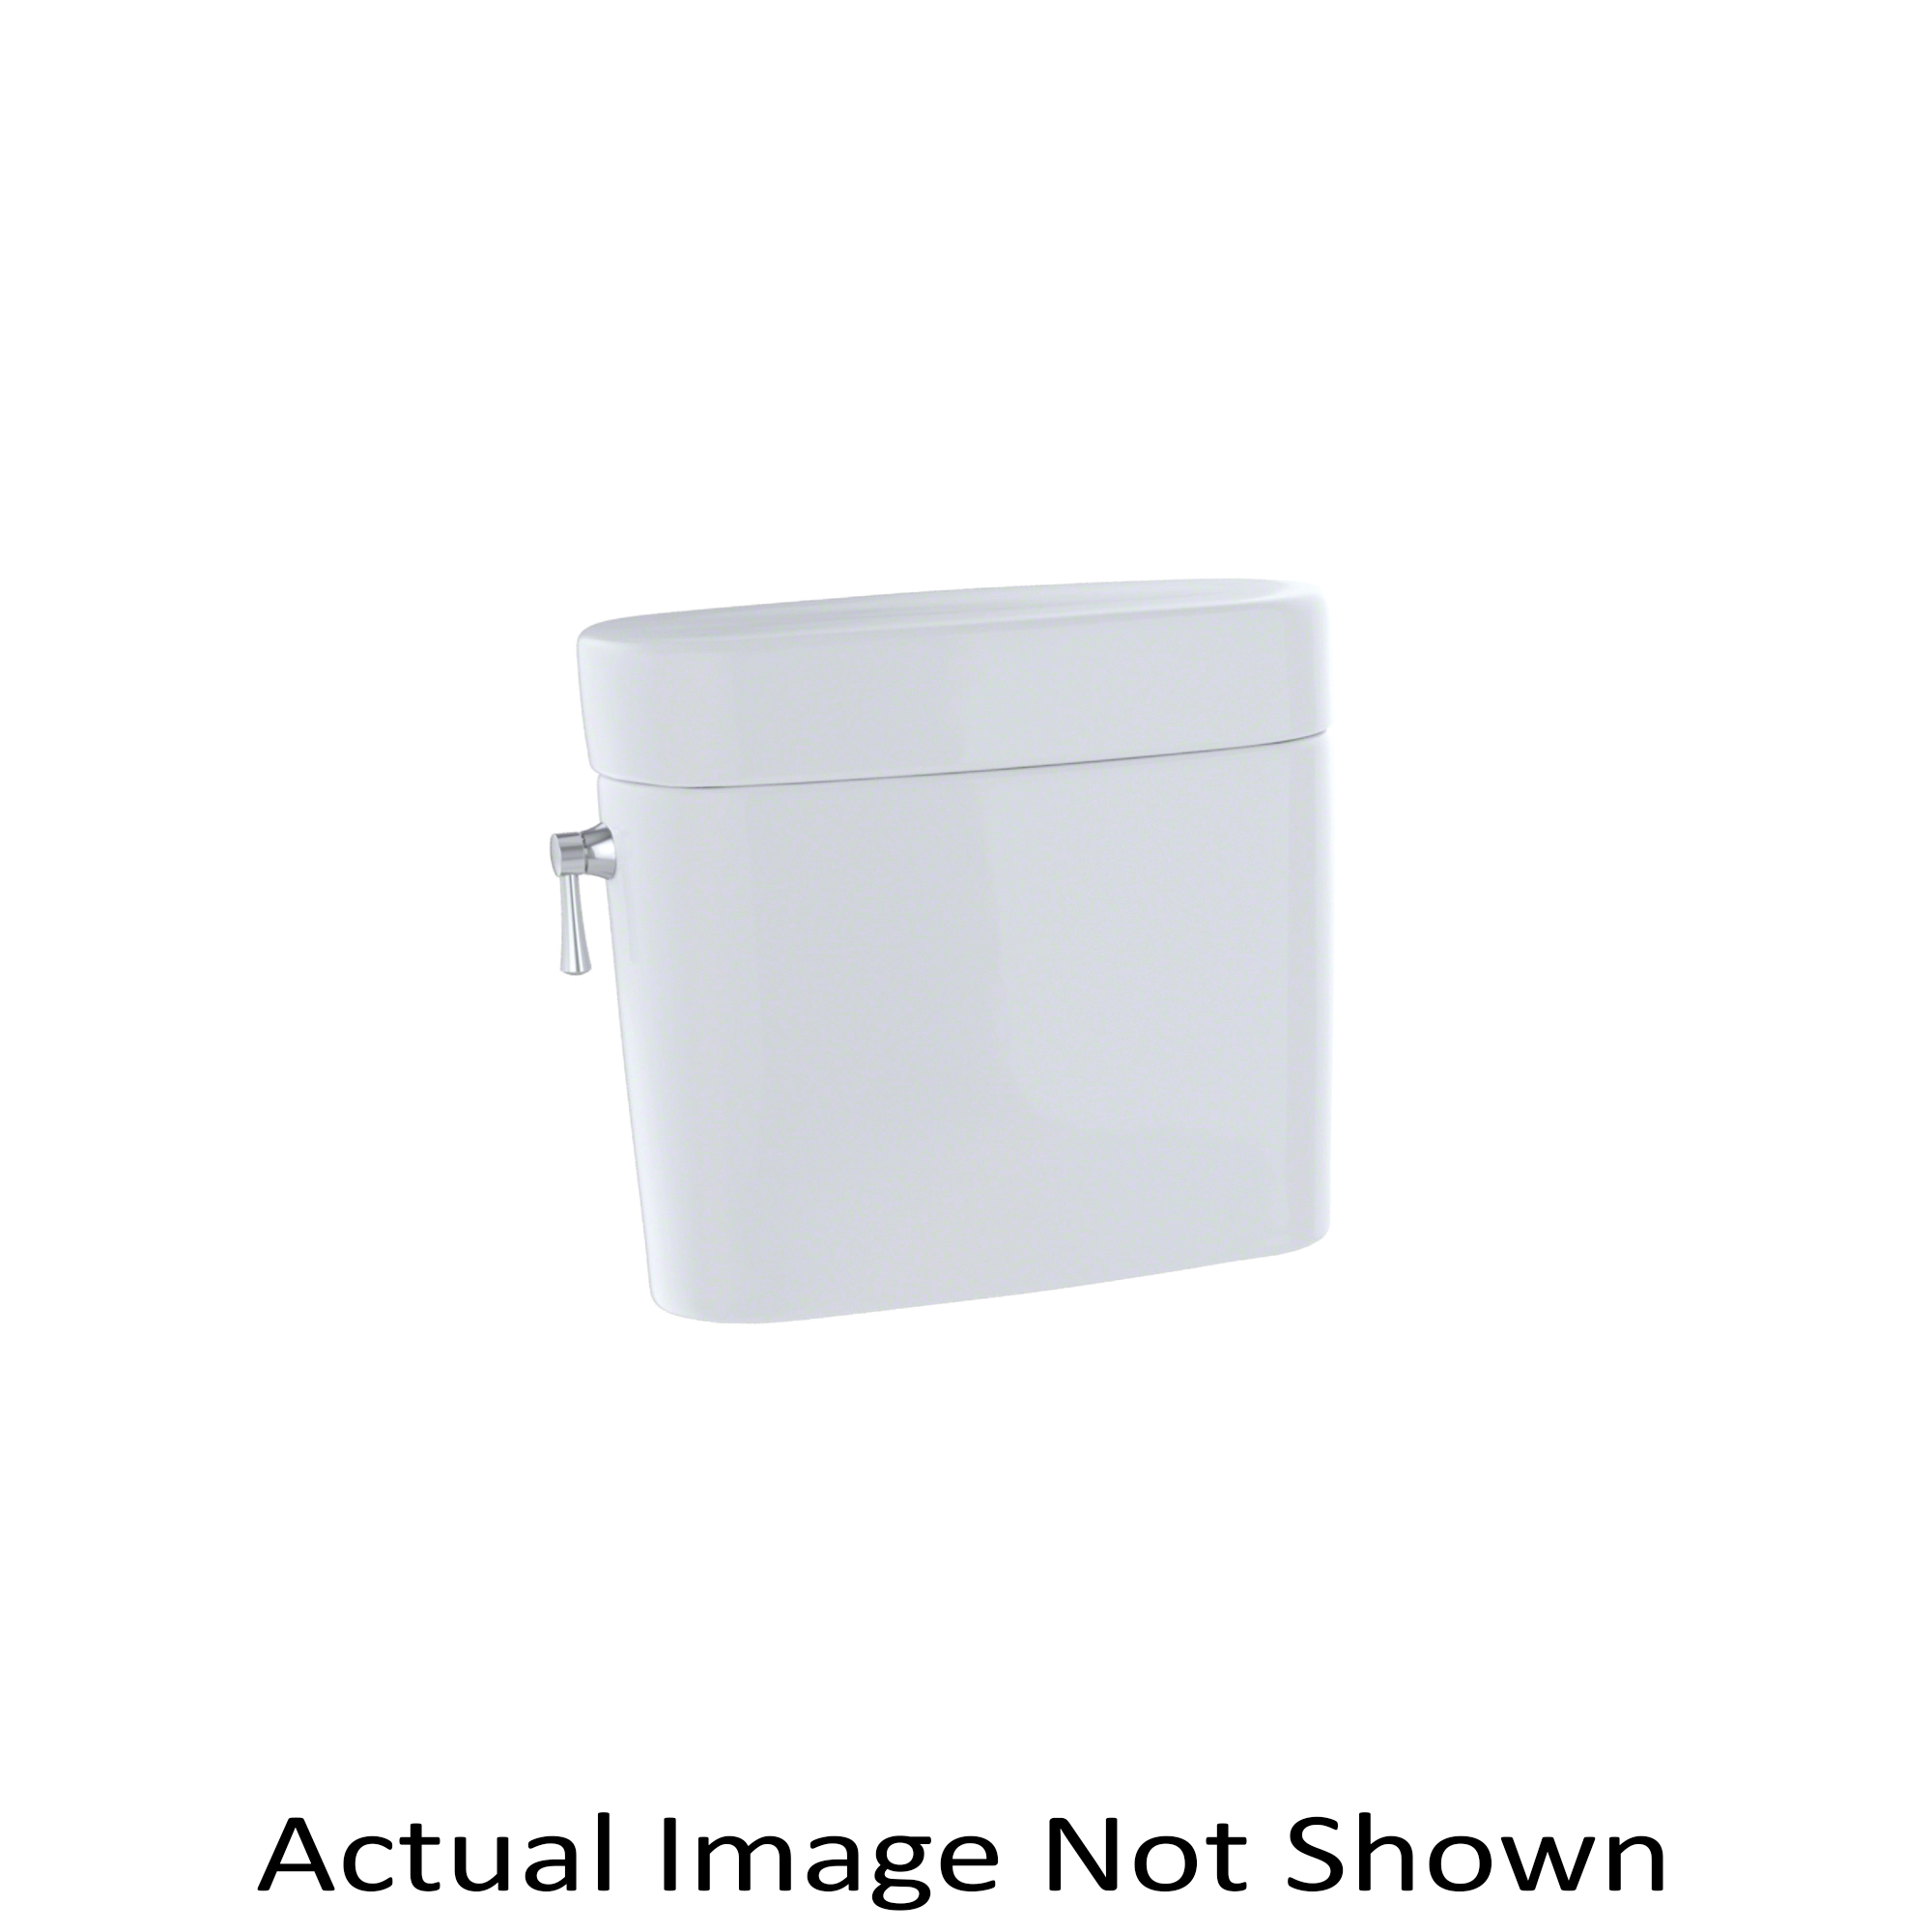 Toto® ST794E#11 Tank and Cover, 1.28 gpf, Left Hand Lever Flush Handle, 3 in Flush, Colonial White, Import